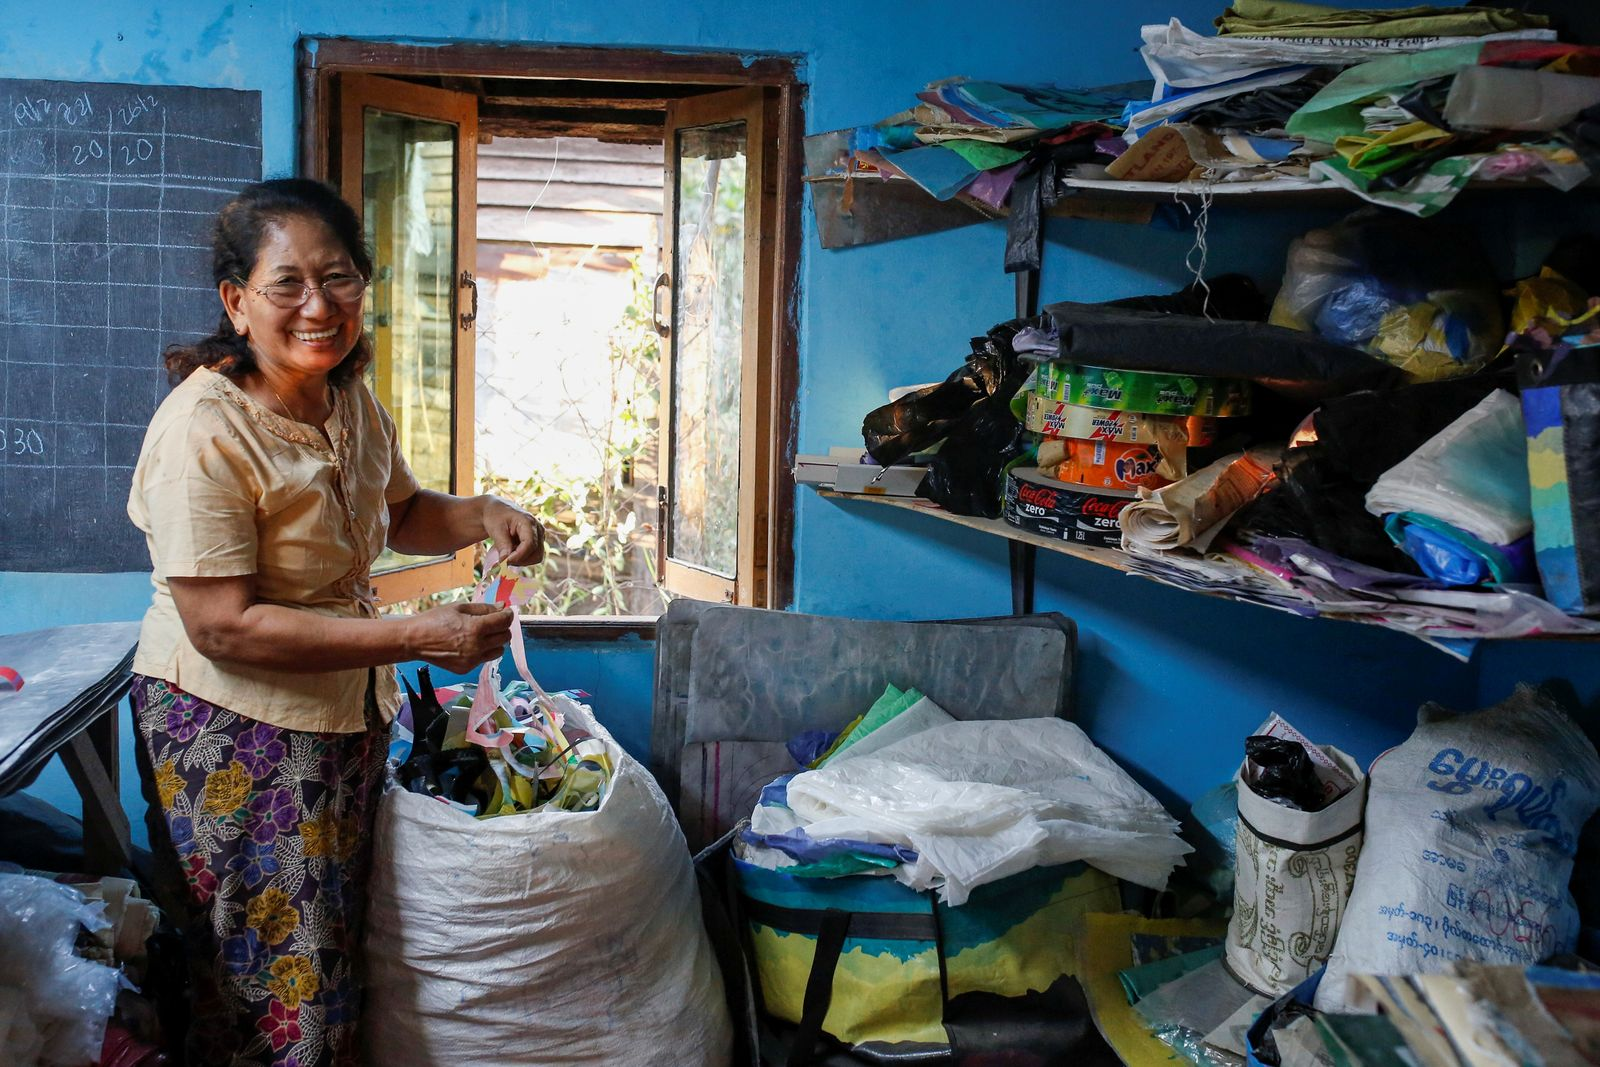 Wendy looks for recycled materials to make into products at a workshop at ChuChu house in Dalla township, Yangon